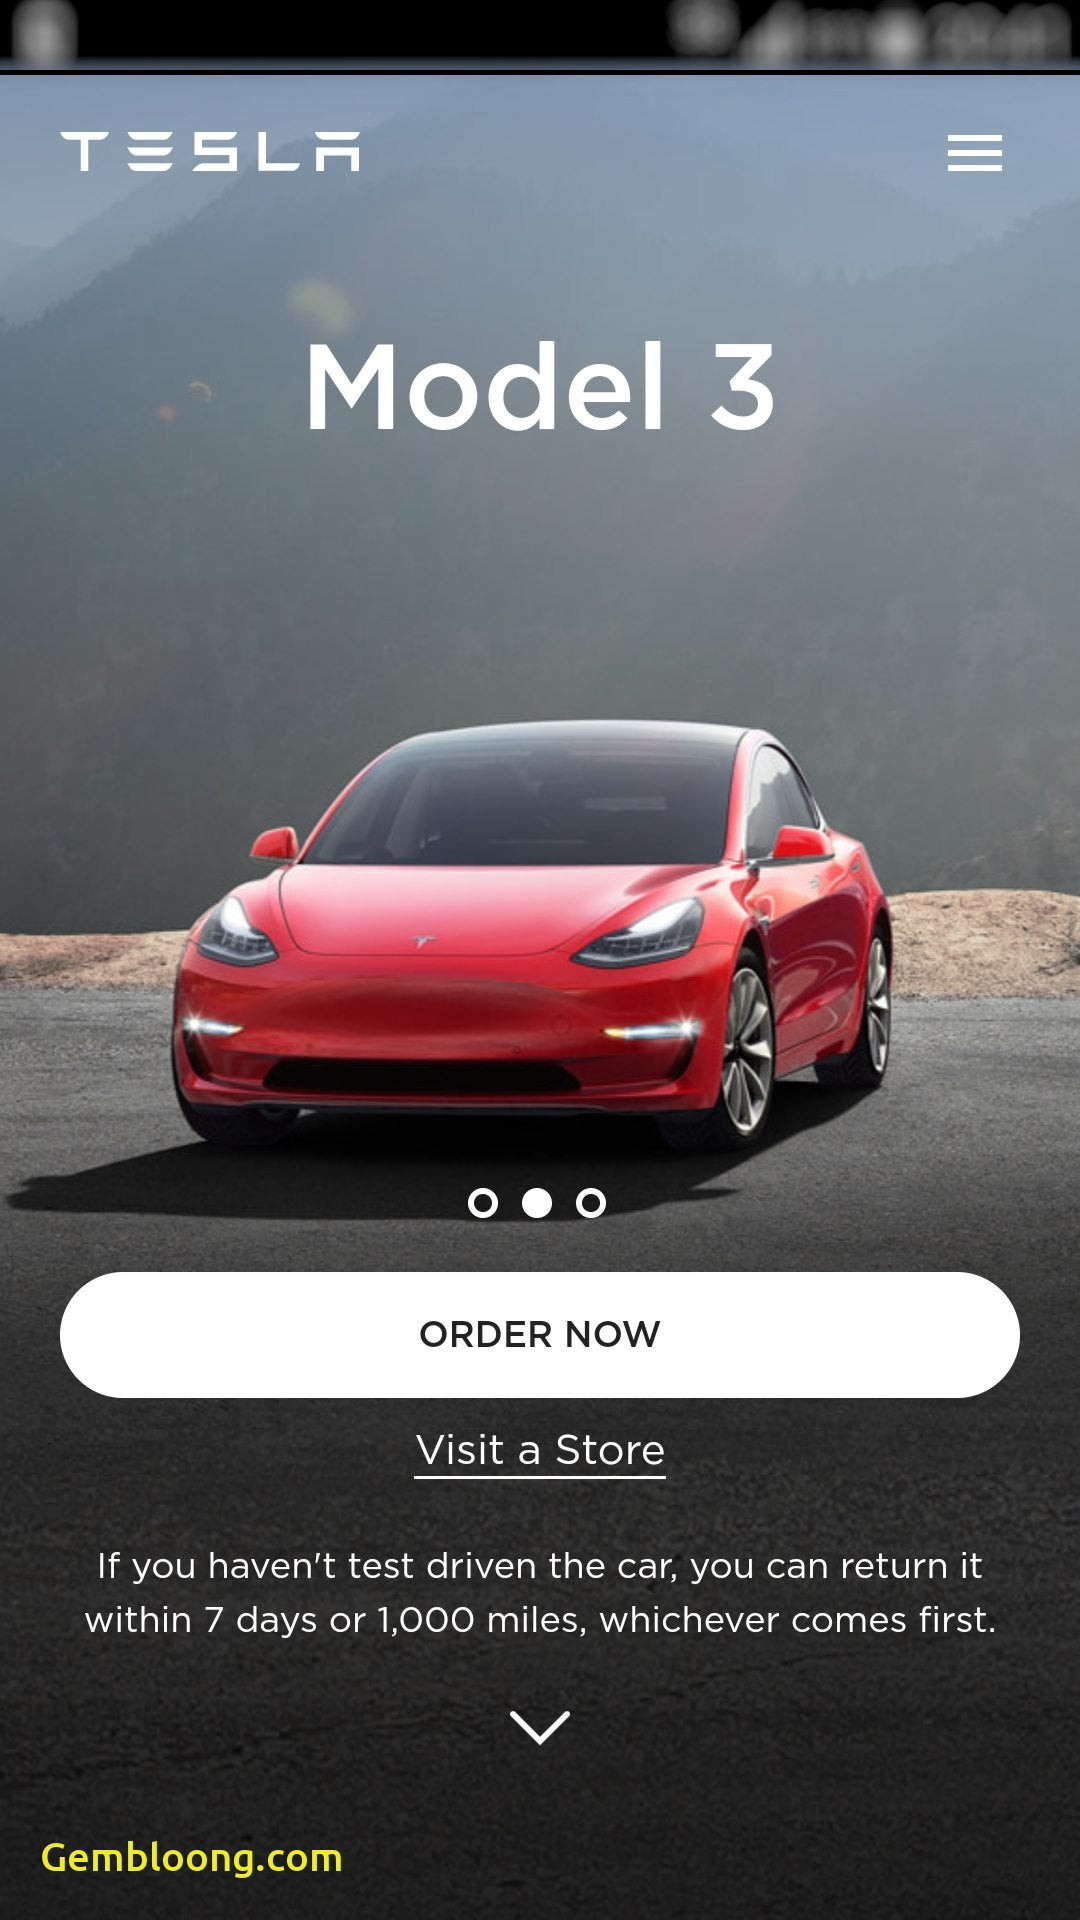 Tesla Ordering via Smartphone